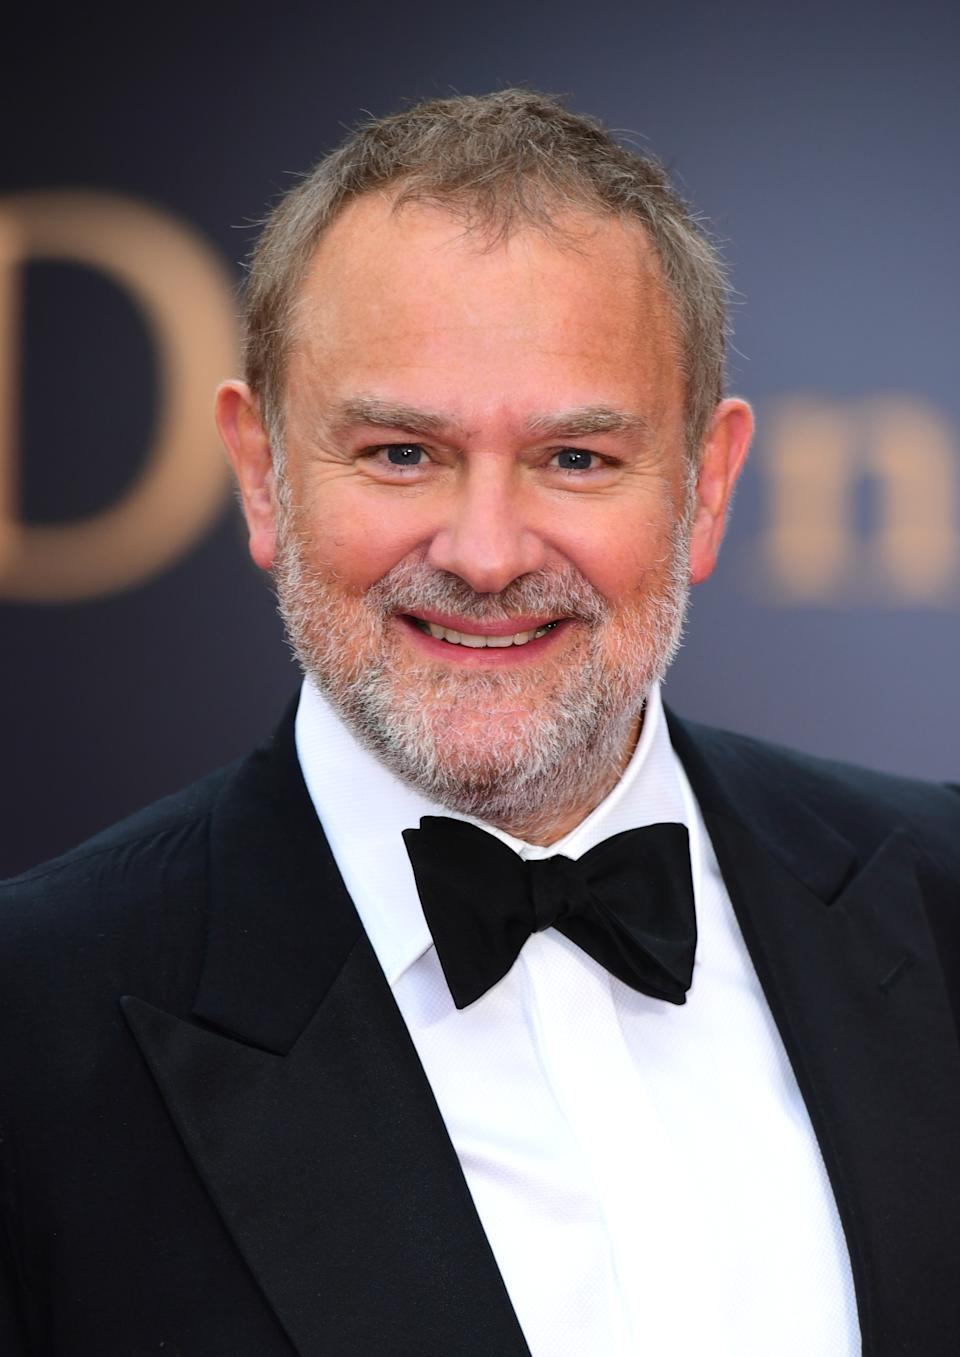 Hugh Bonneville attending the world premiere of Downton Abbey, held at the Cineworld Leicester Square, London.